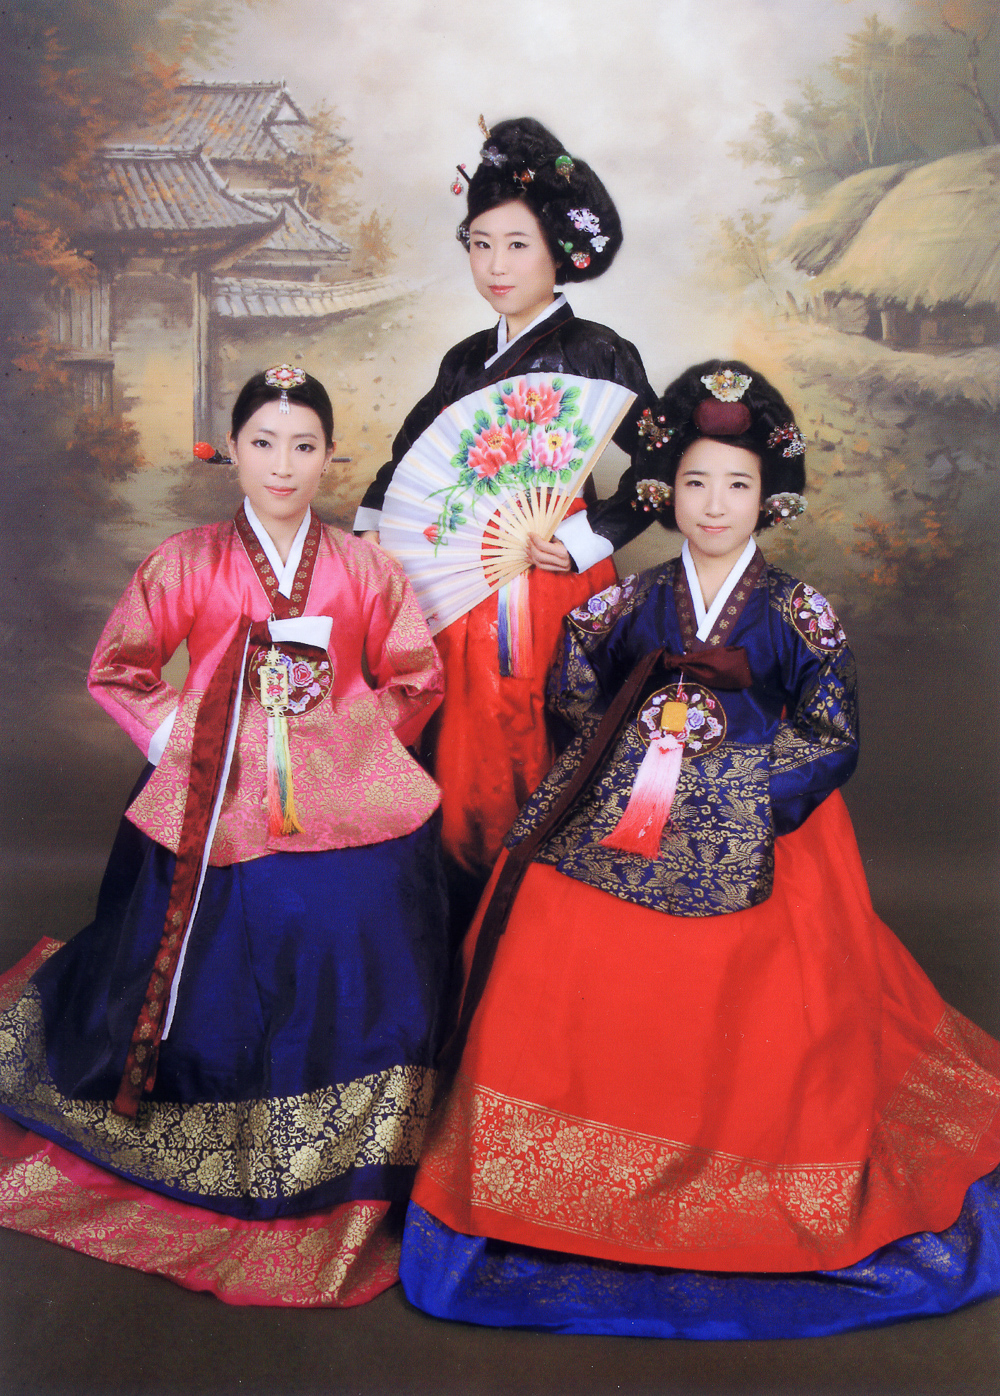 Professor Oh (me), Yoonah and Judy dressed in hanbok at Goguan Studio.